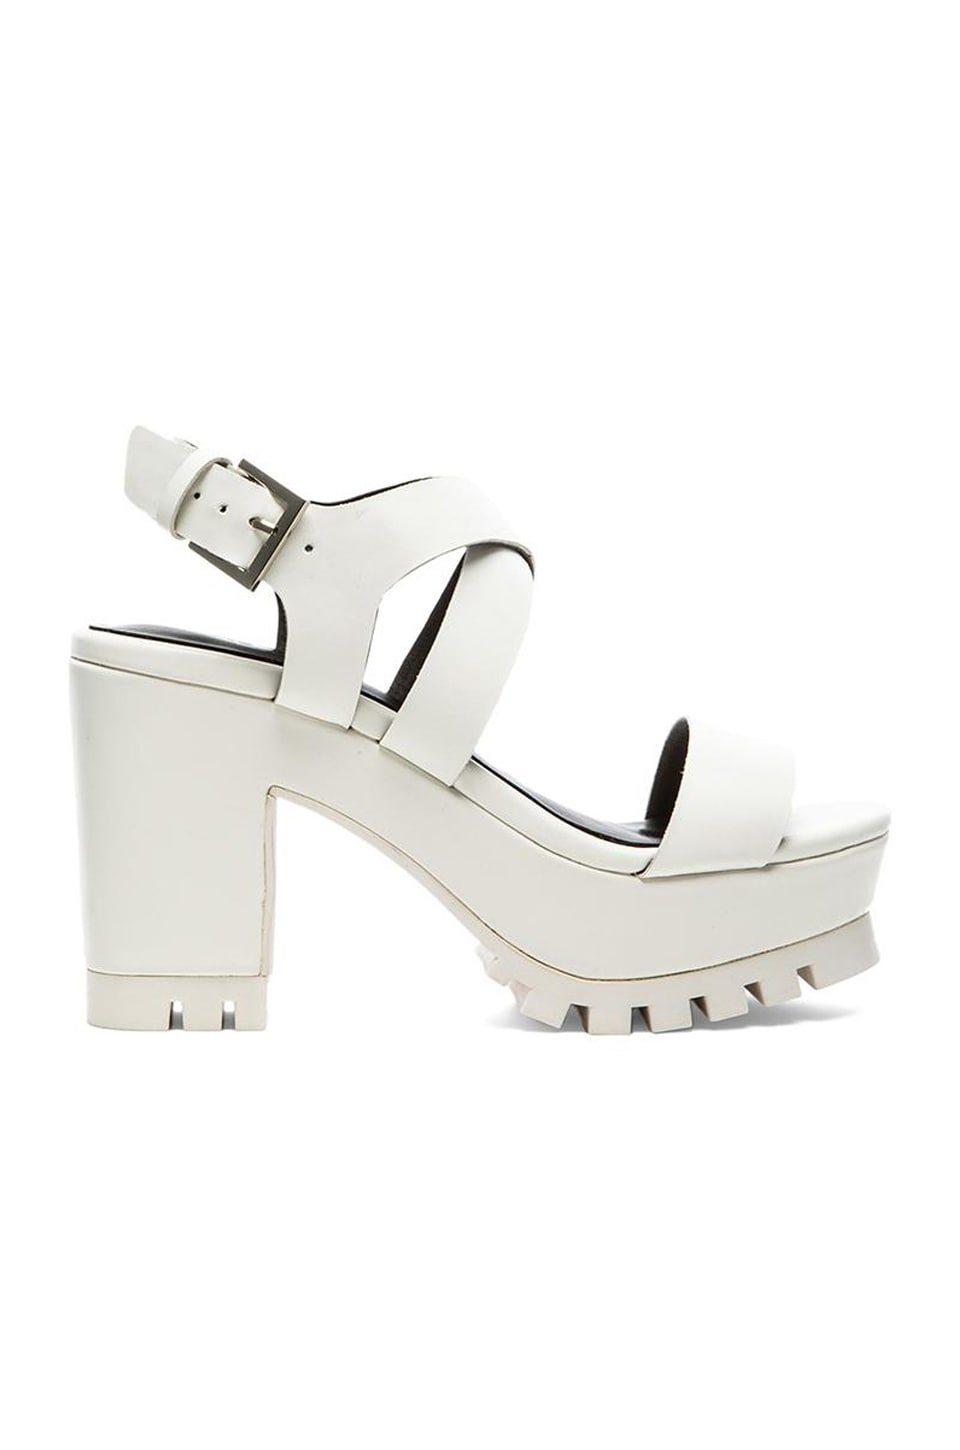 SOLES Oktoberfest Heeled Sandal in White